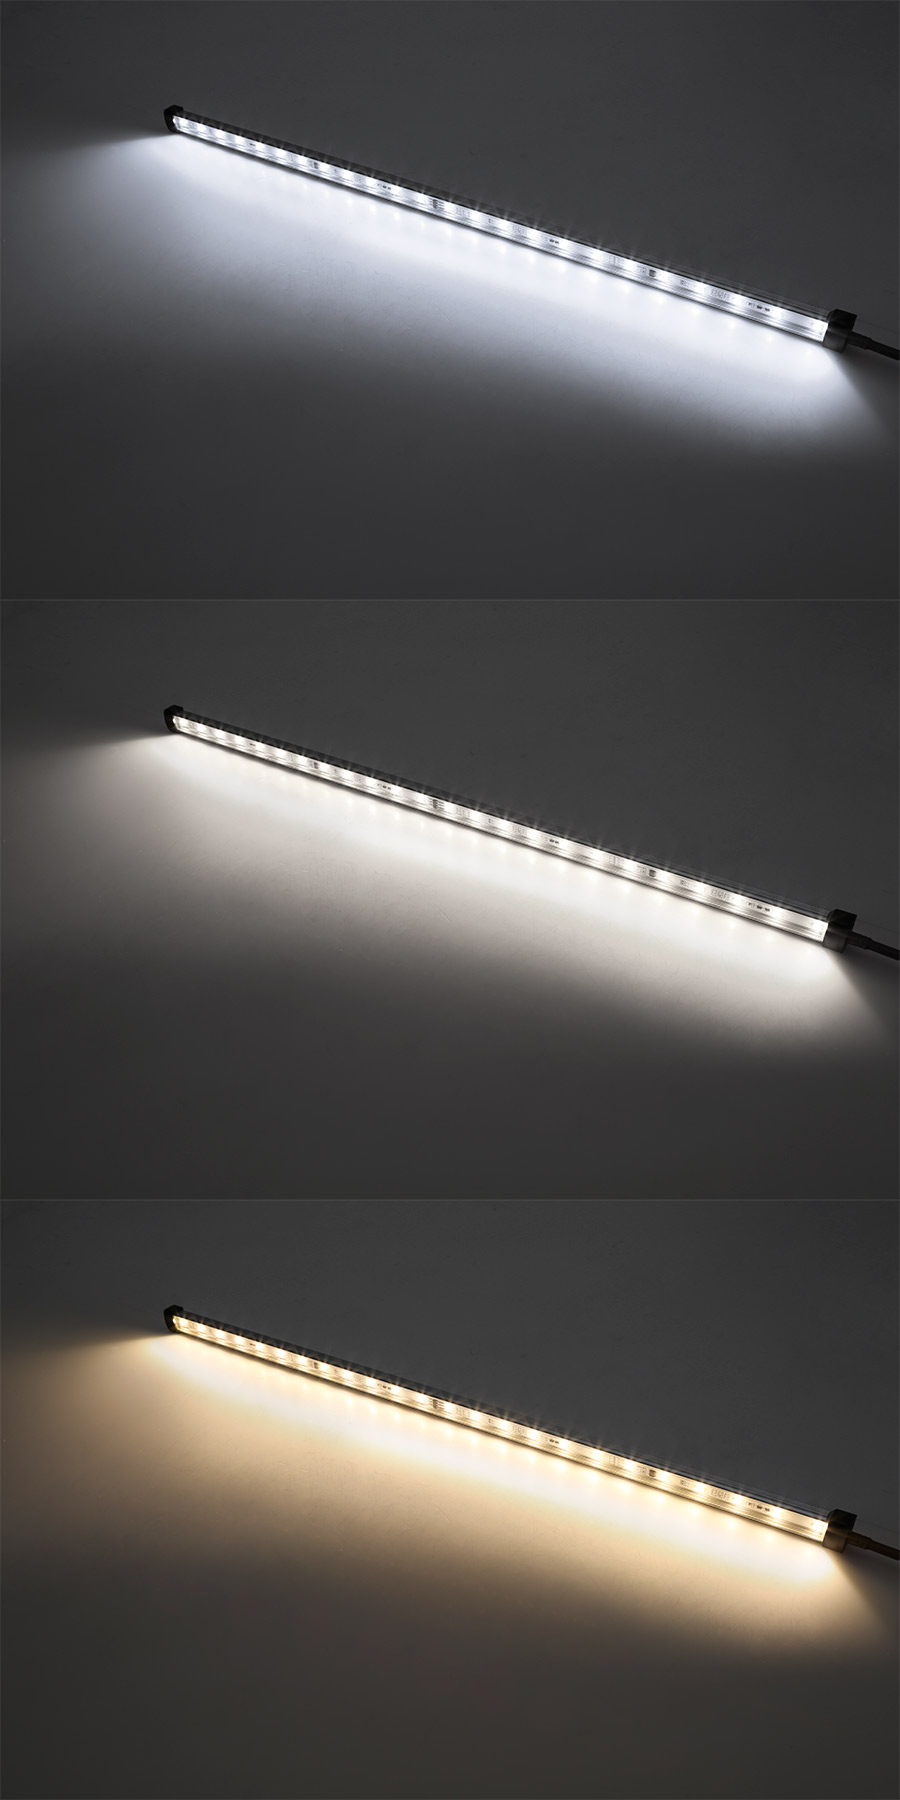 Weatherproof linear led light bar fixture 860 lumens aluminum weatherproof led linear light bar fixture on showing beam pattern in cool white top natural white center and warm white bottom arubaitofo Image collections